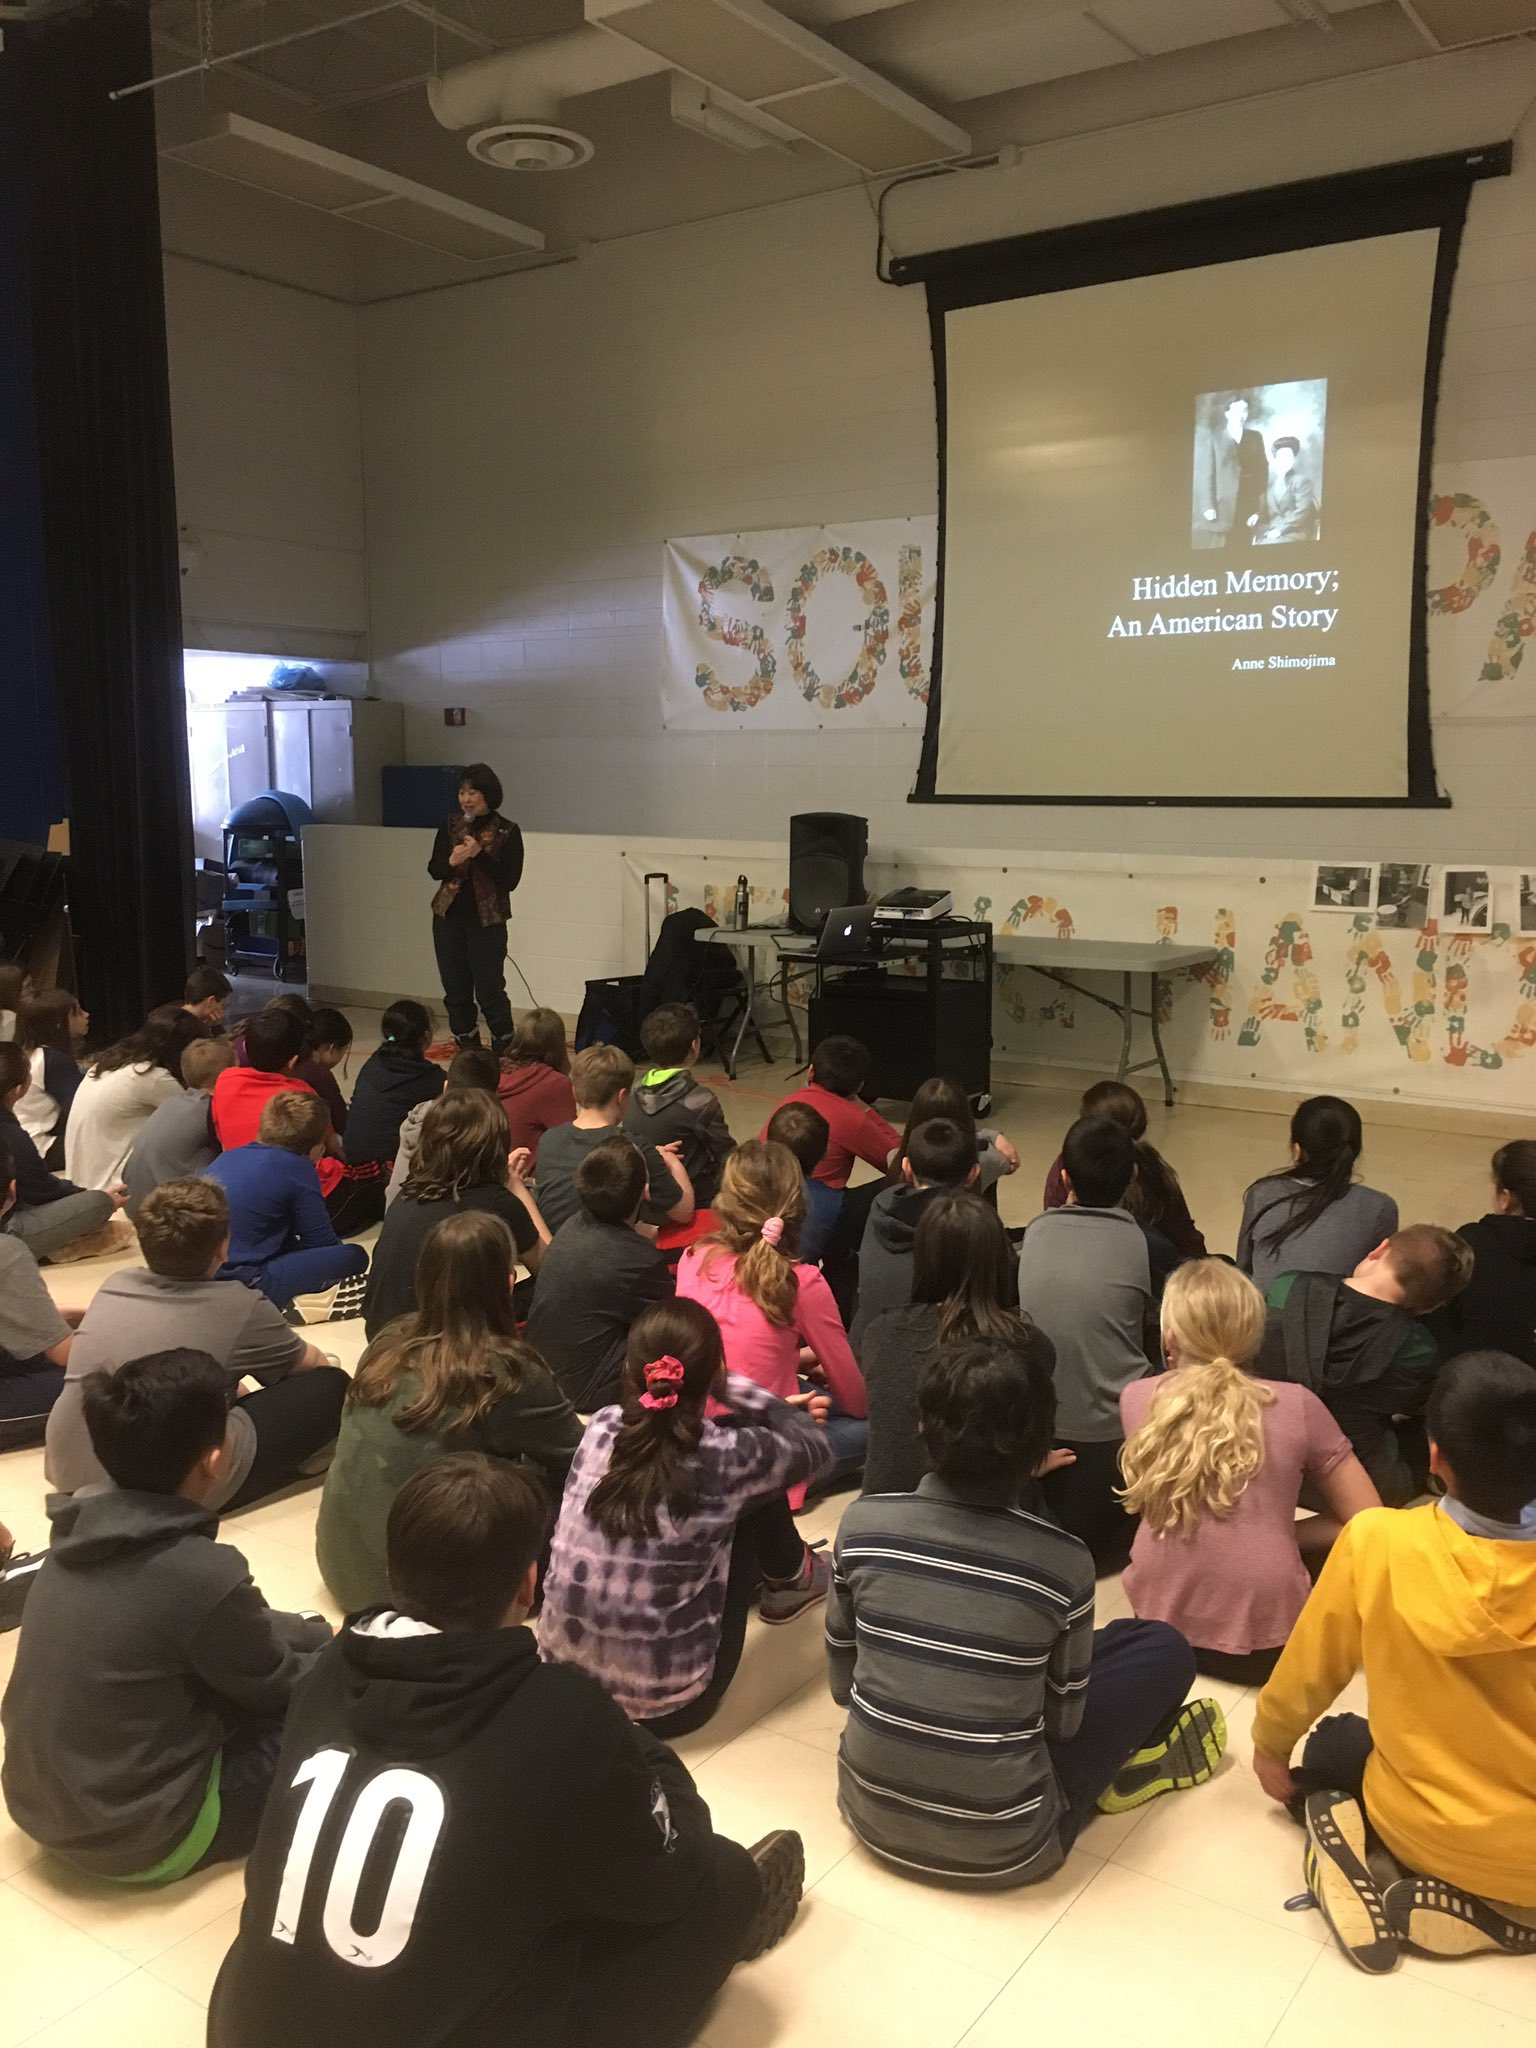 Anne Shimojima spoke to our 5th graders about her grandparents internment during WW2. An amazing, engaging story told. #engage109 #sp109 https://t.co/T4Brx0gPub